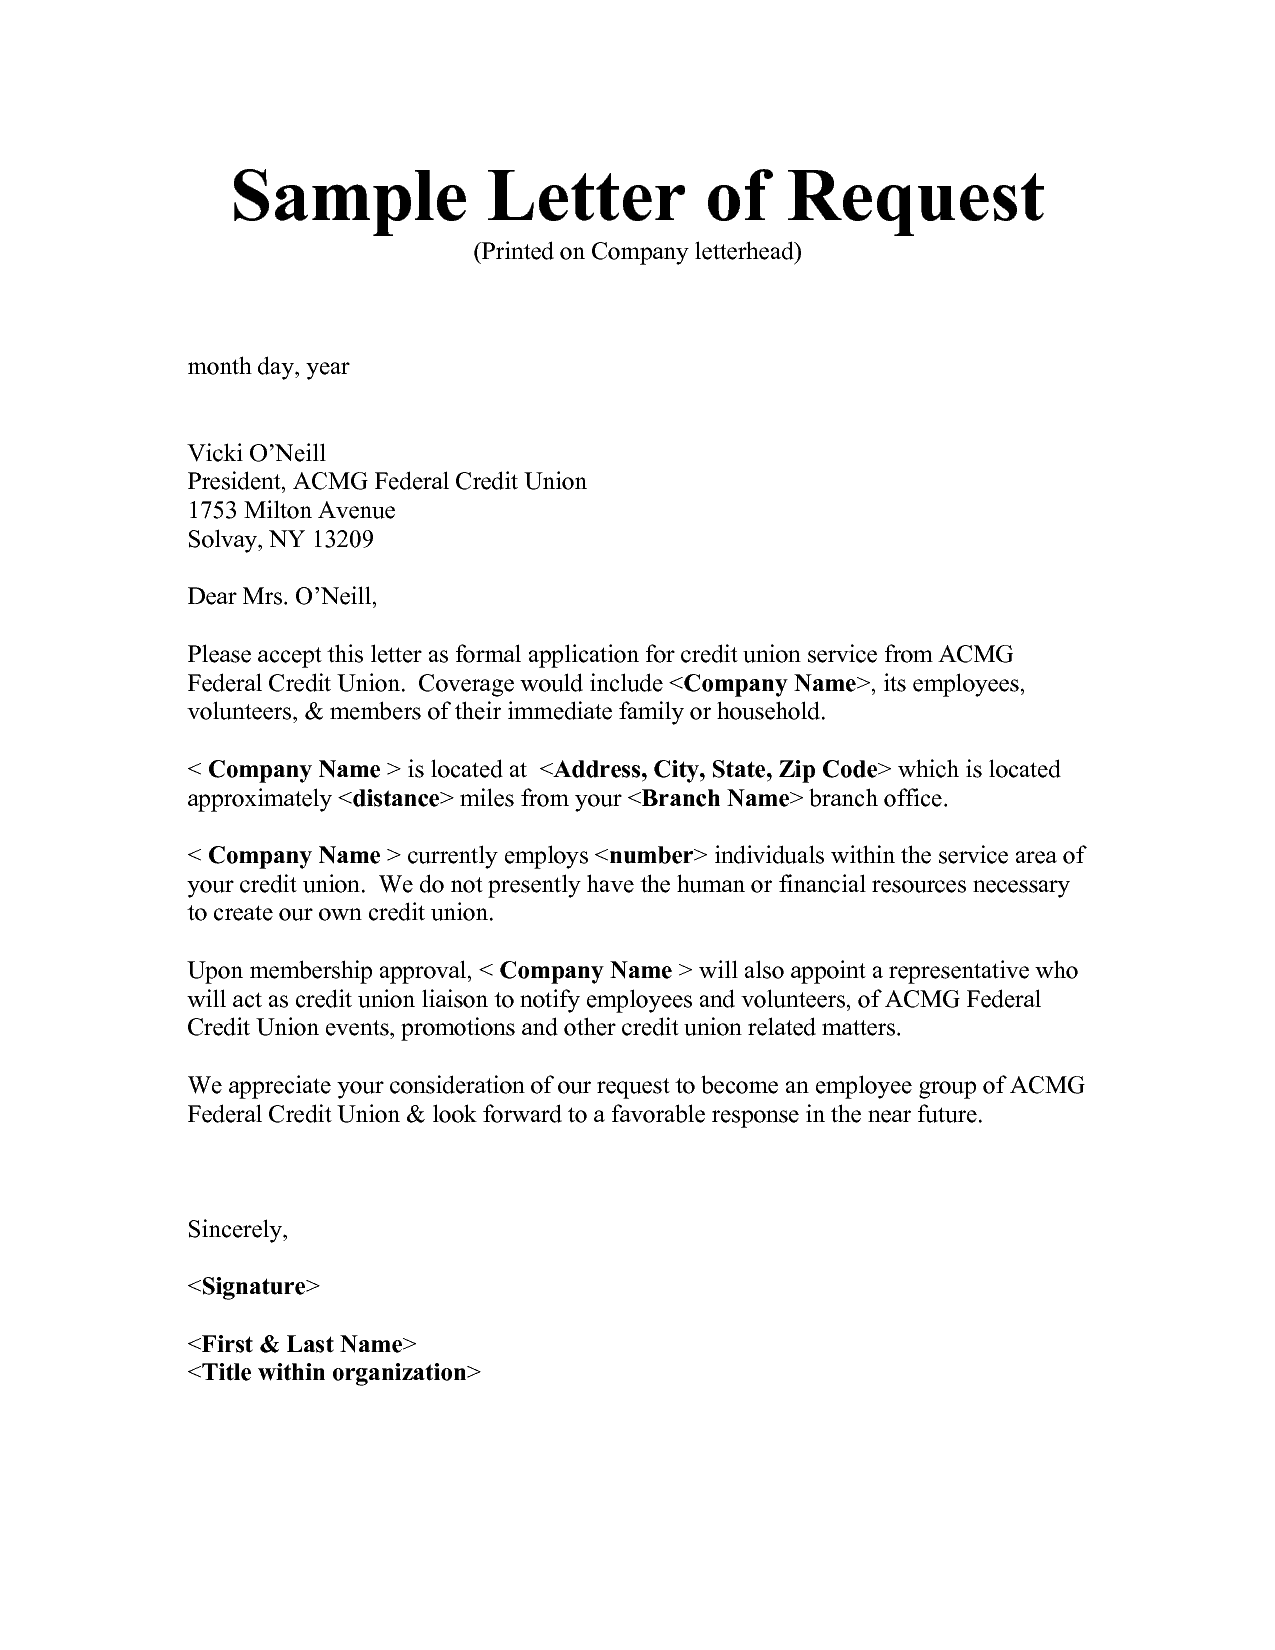 Business letter requesting information sample letters format sample request letters writing professional letter requesting job recommendation from professor best free home design idea inspiration spiritdancerdesigns Image collections